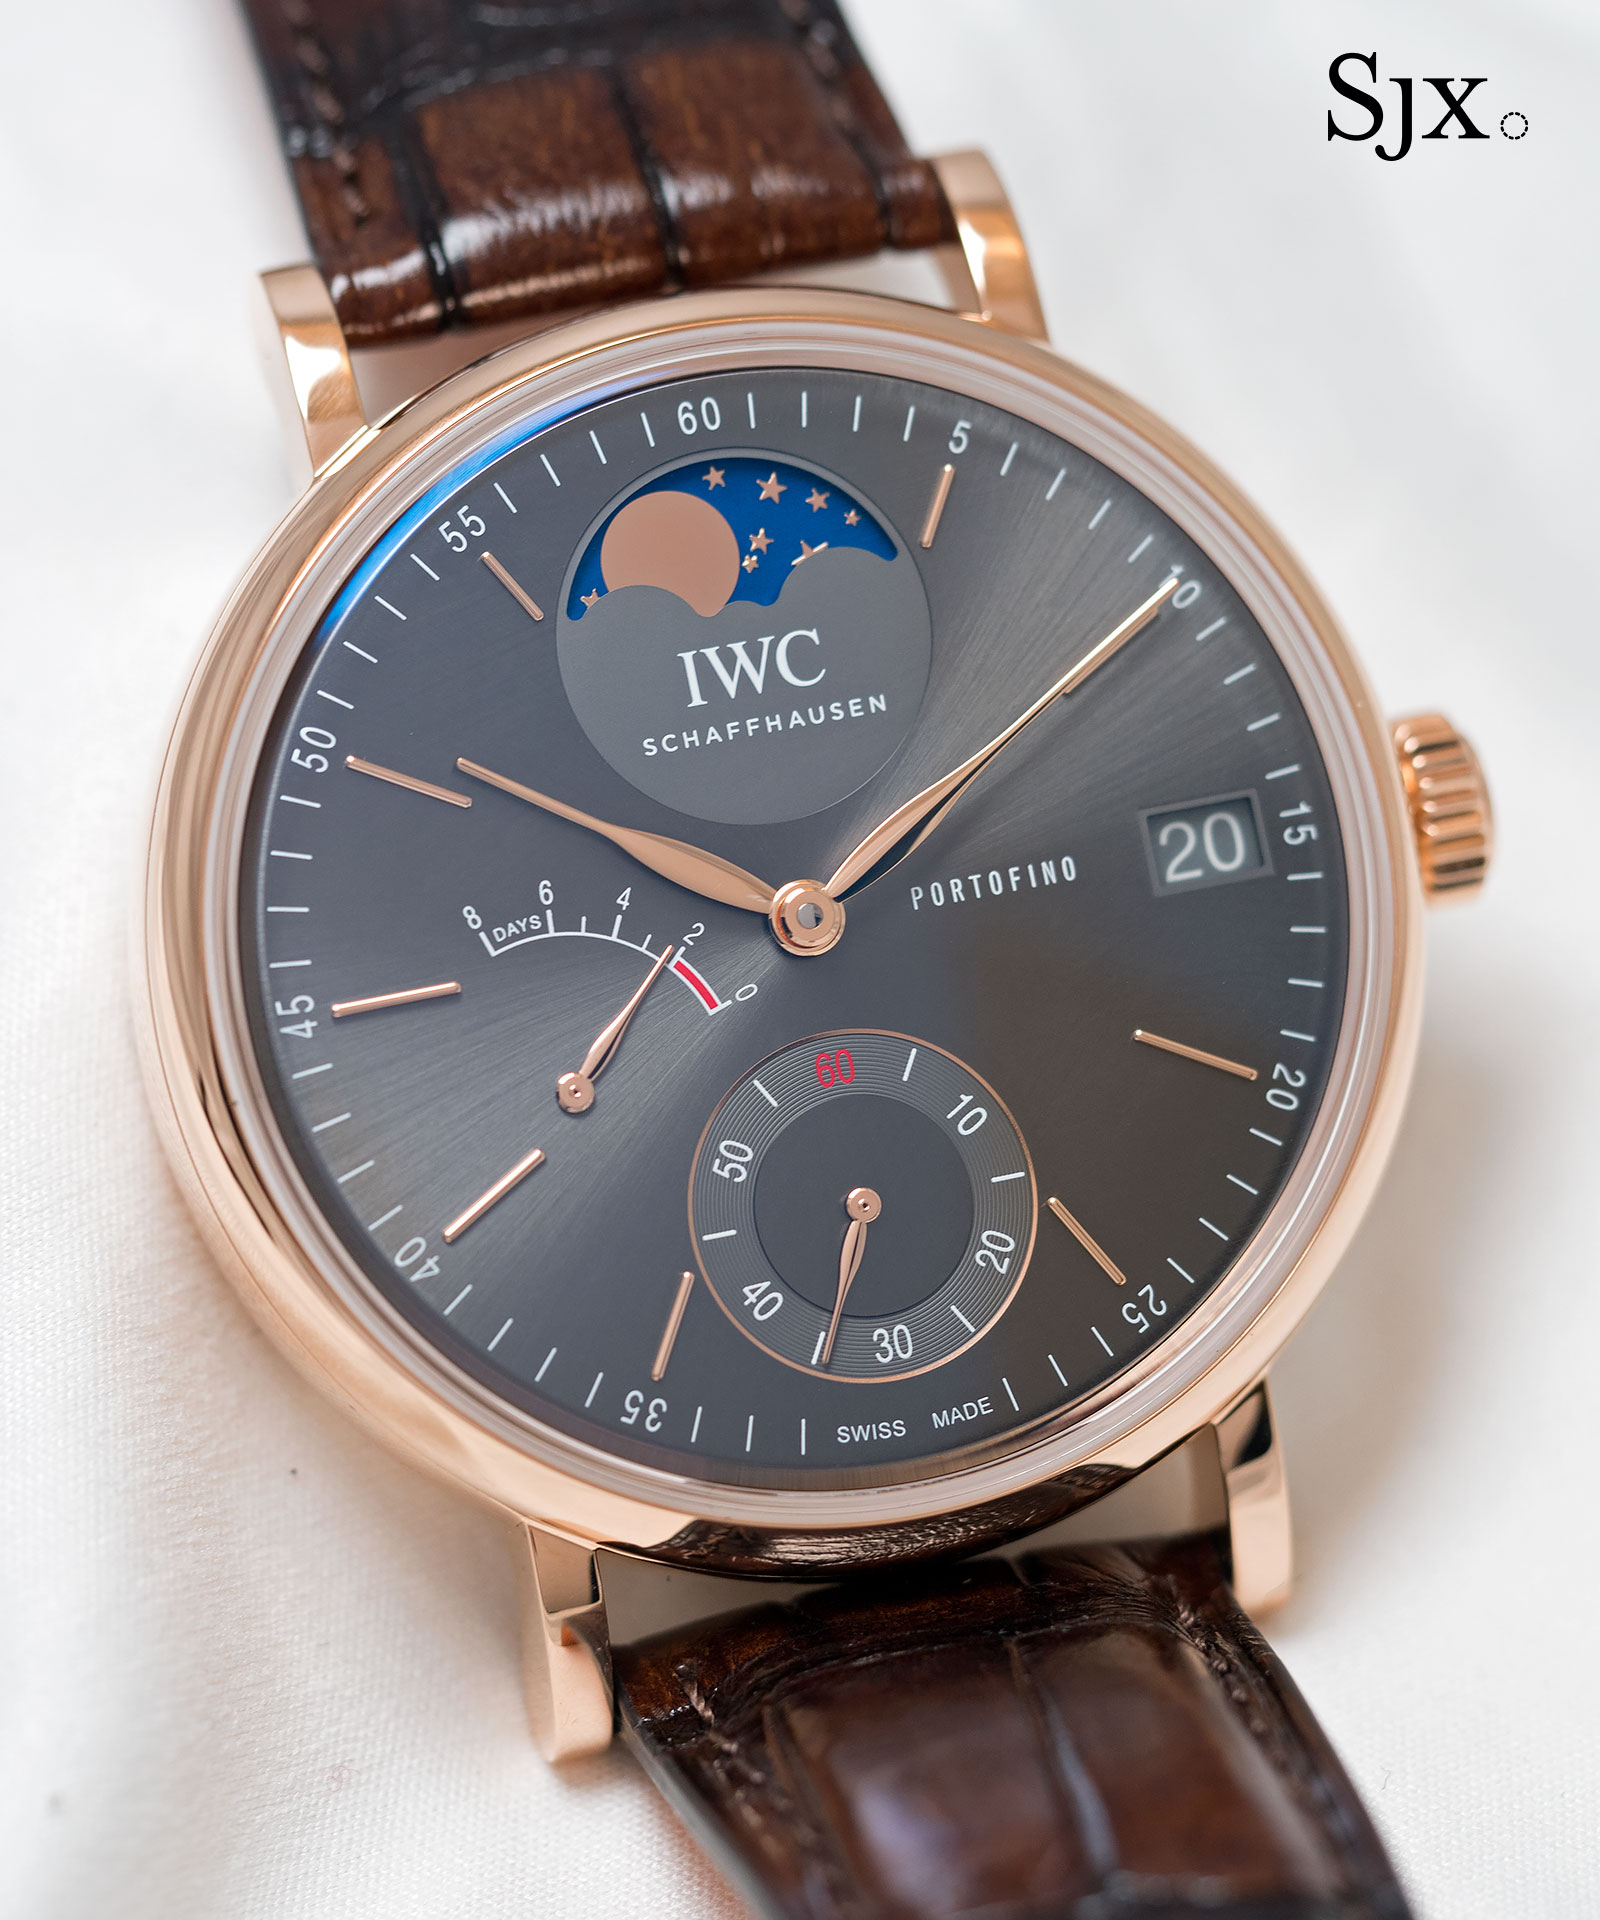 IWC Portofino Hand-Wound Eight Days Moon Phase 3